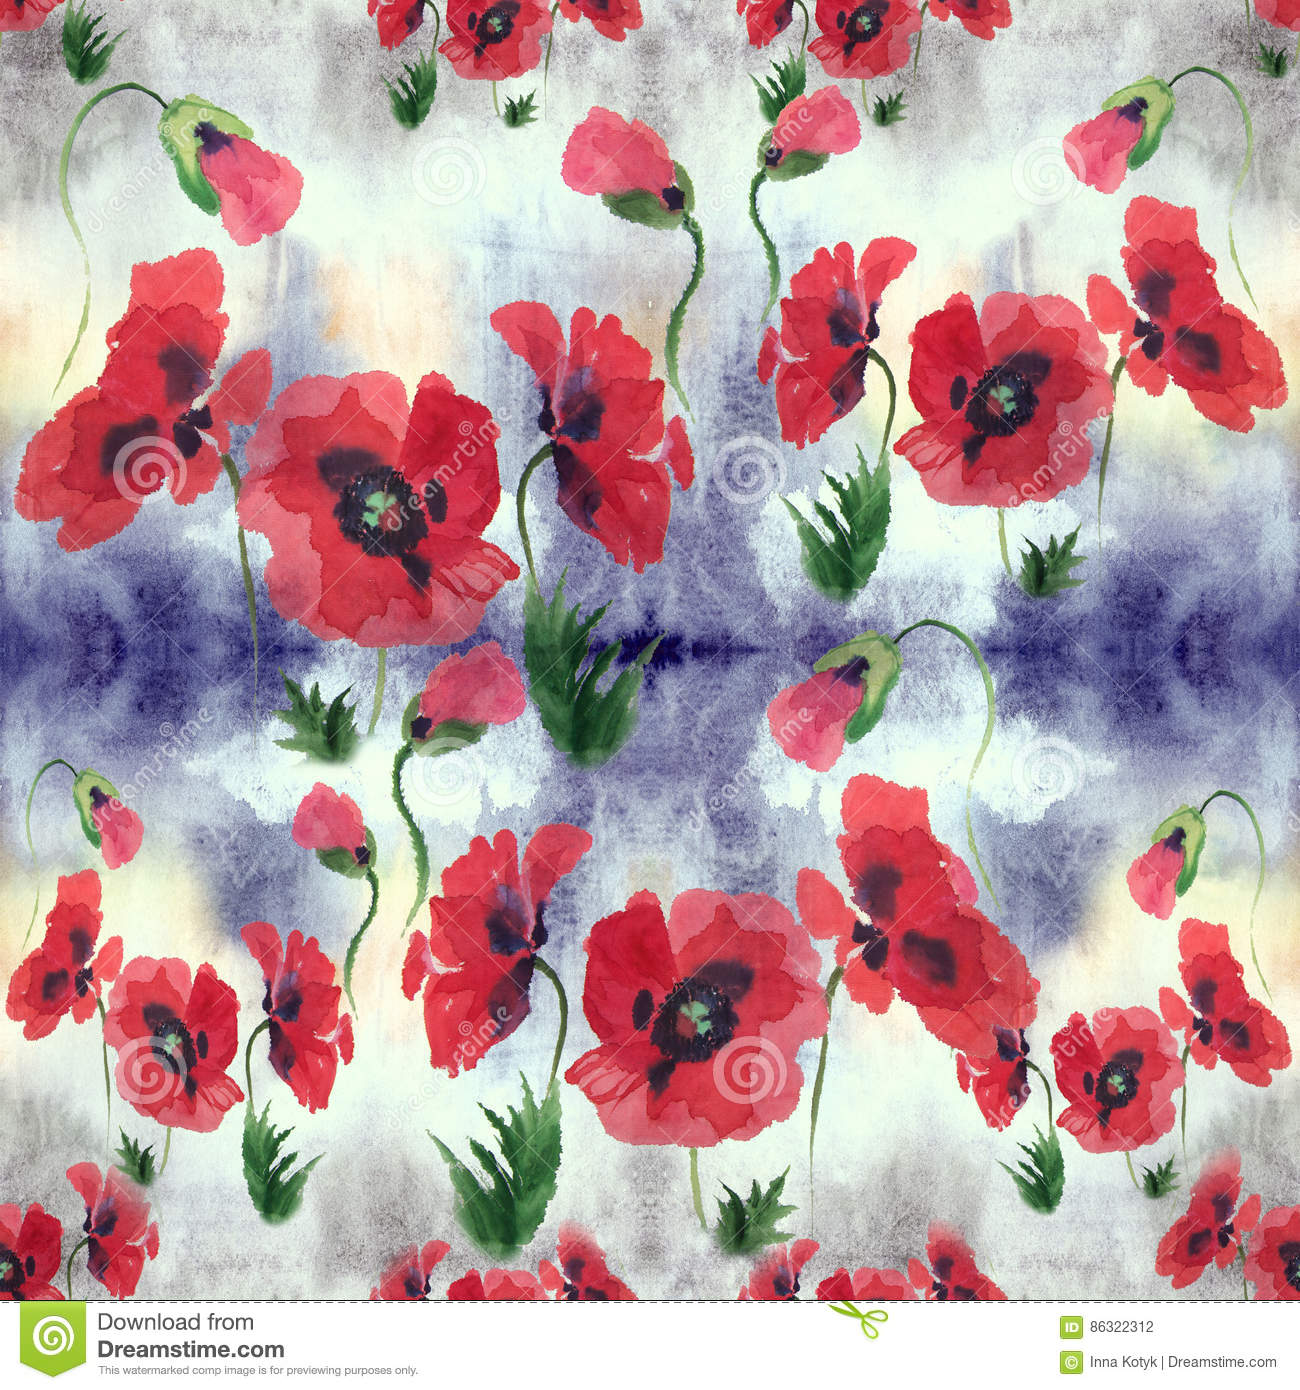 Poppies Flowers Leaves And Buds Drawing On Rice Paper Seamless